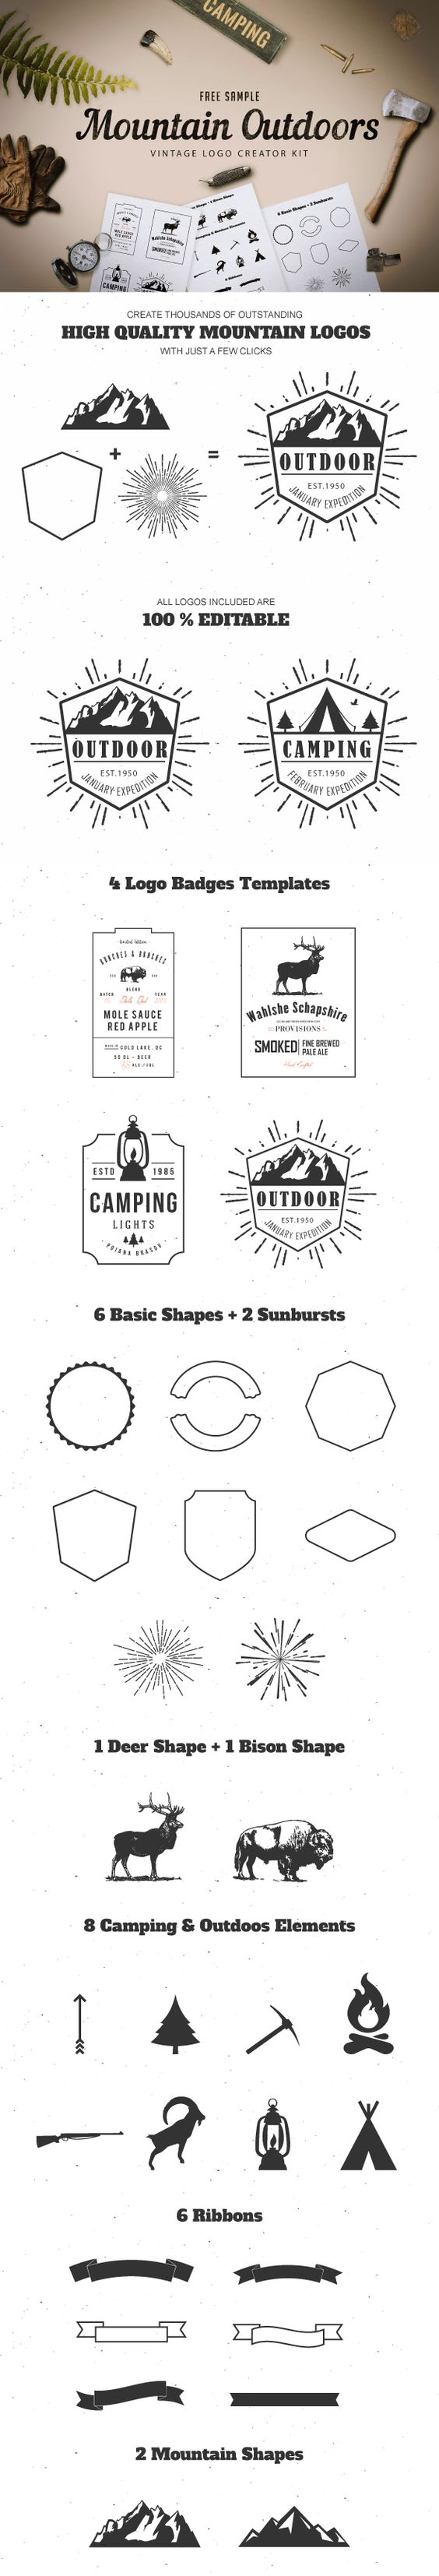 Freebie - Mountain Outdoor Vintage Logo Kit par Mircea Bucsa